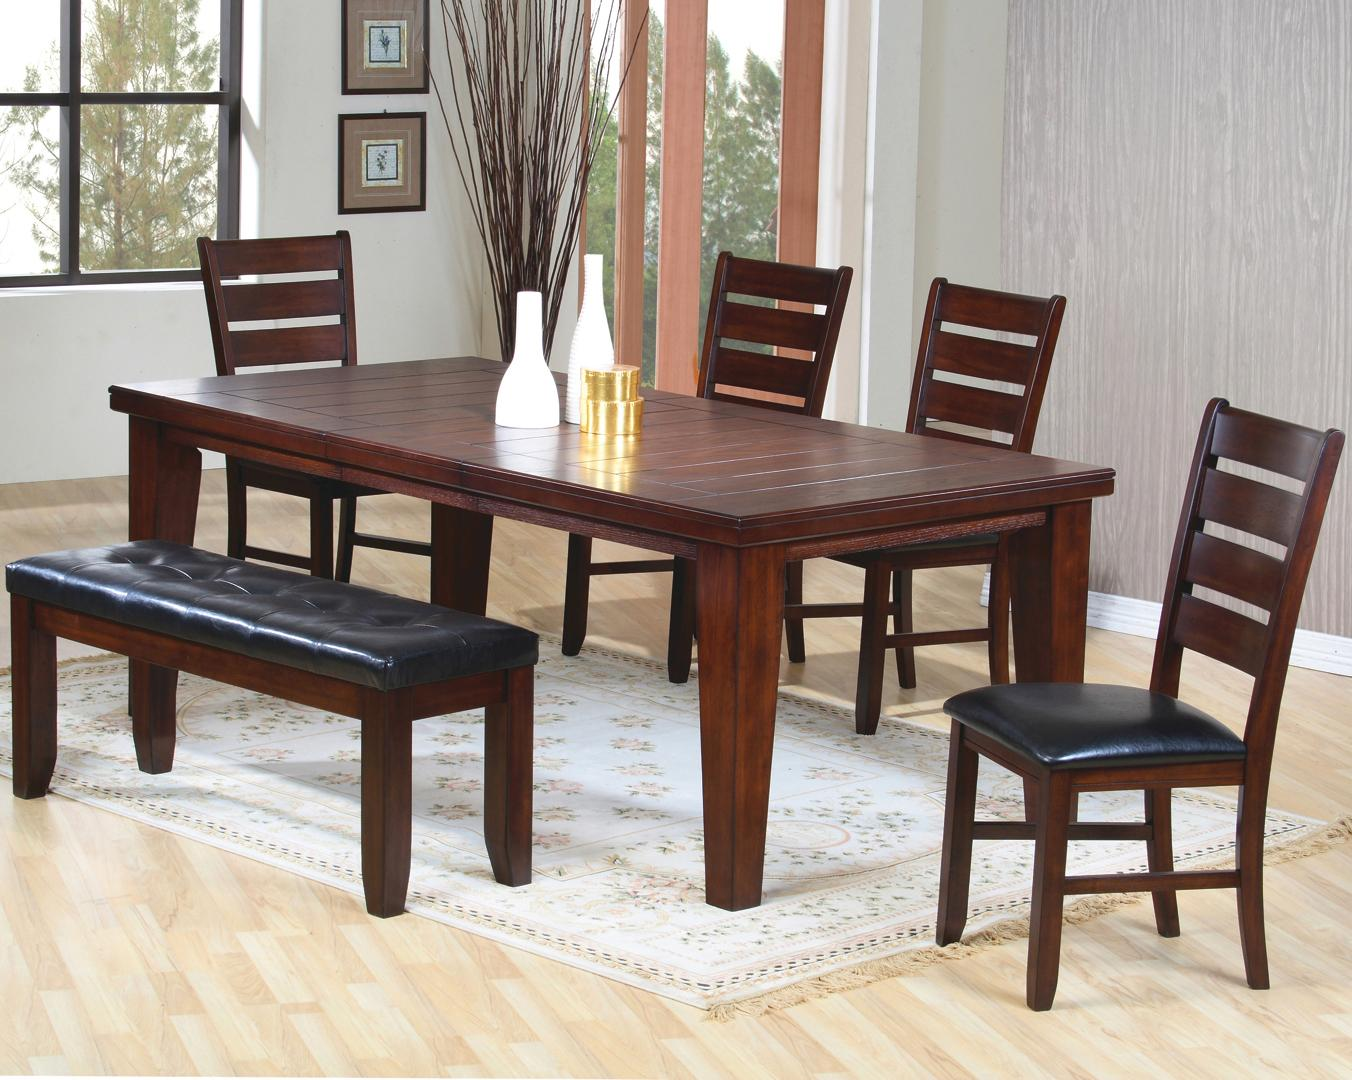 Coaster Imperial 6 Piece Dining Set - Item Number 101881+4x2+3 & Coaster Imperial 6 Piece Dining Set | Value City Furniture | Table ...